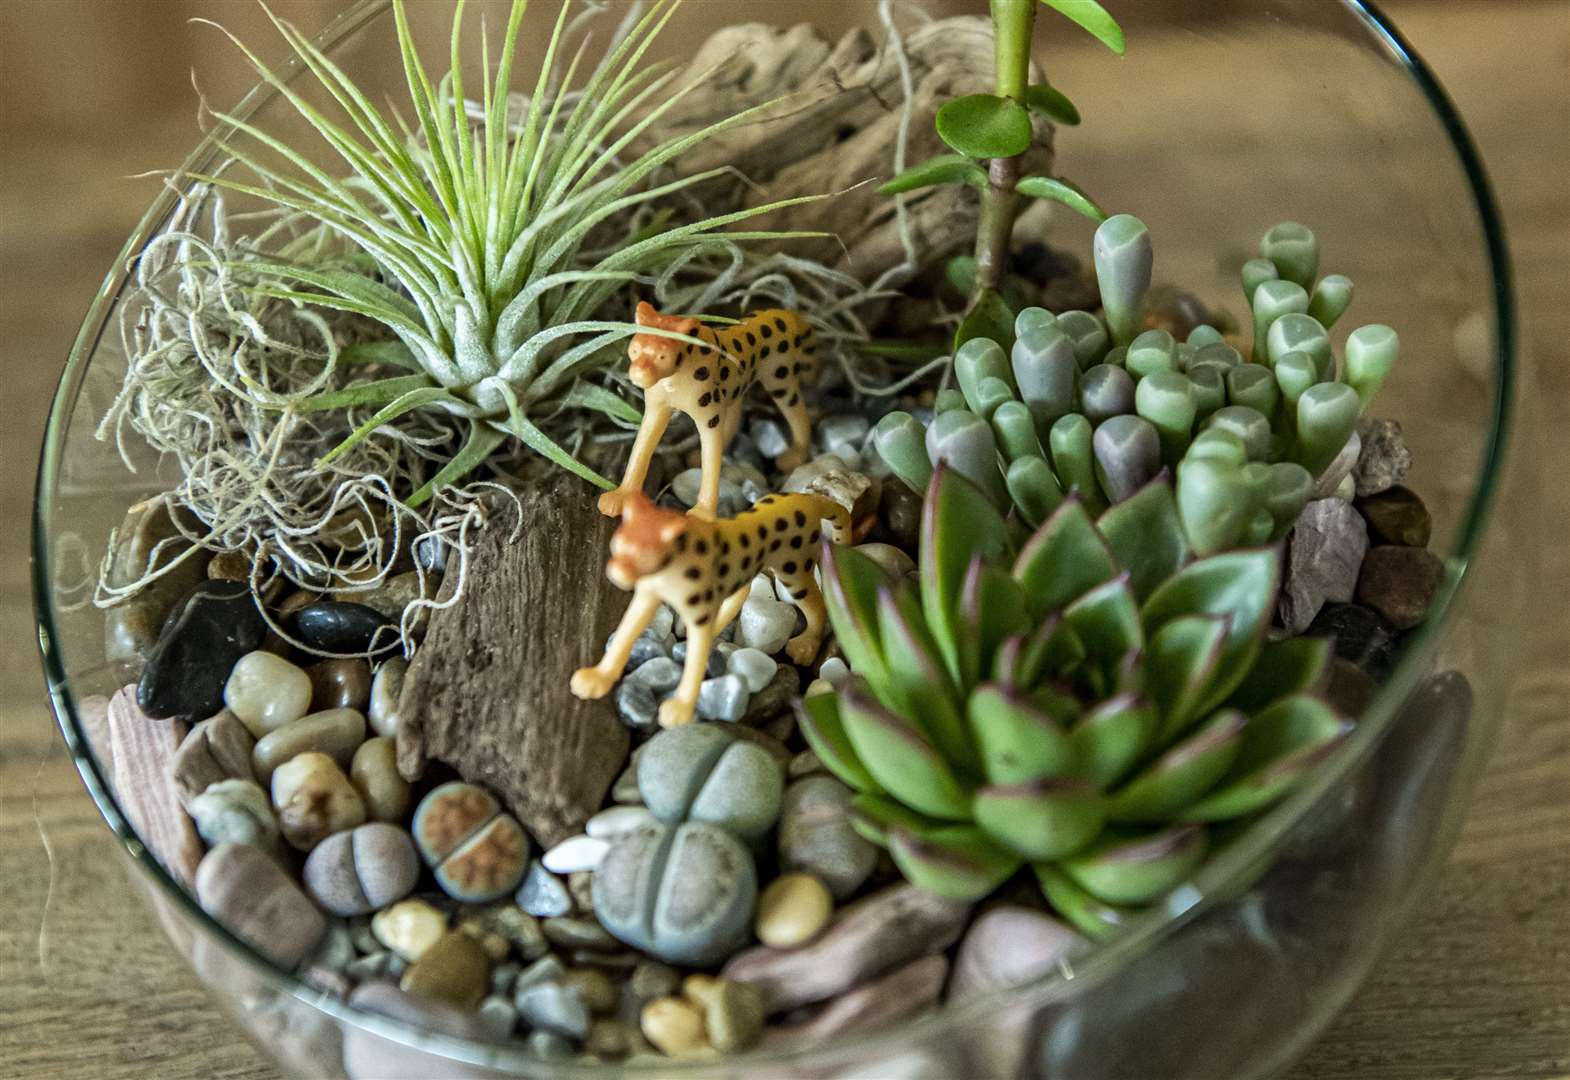 How To: Welcome to the Terrarium